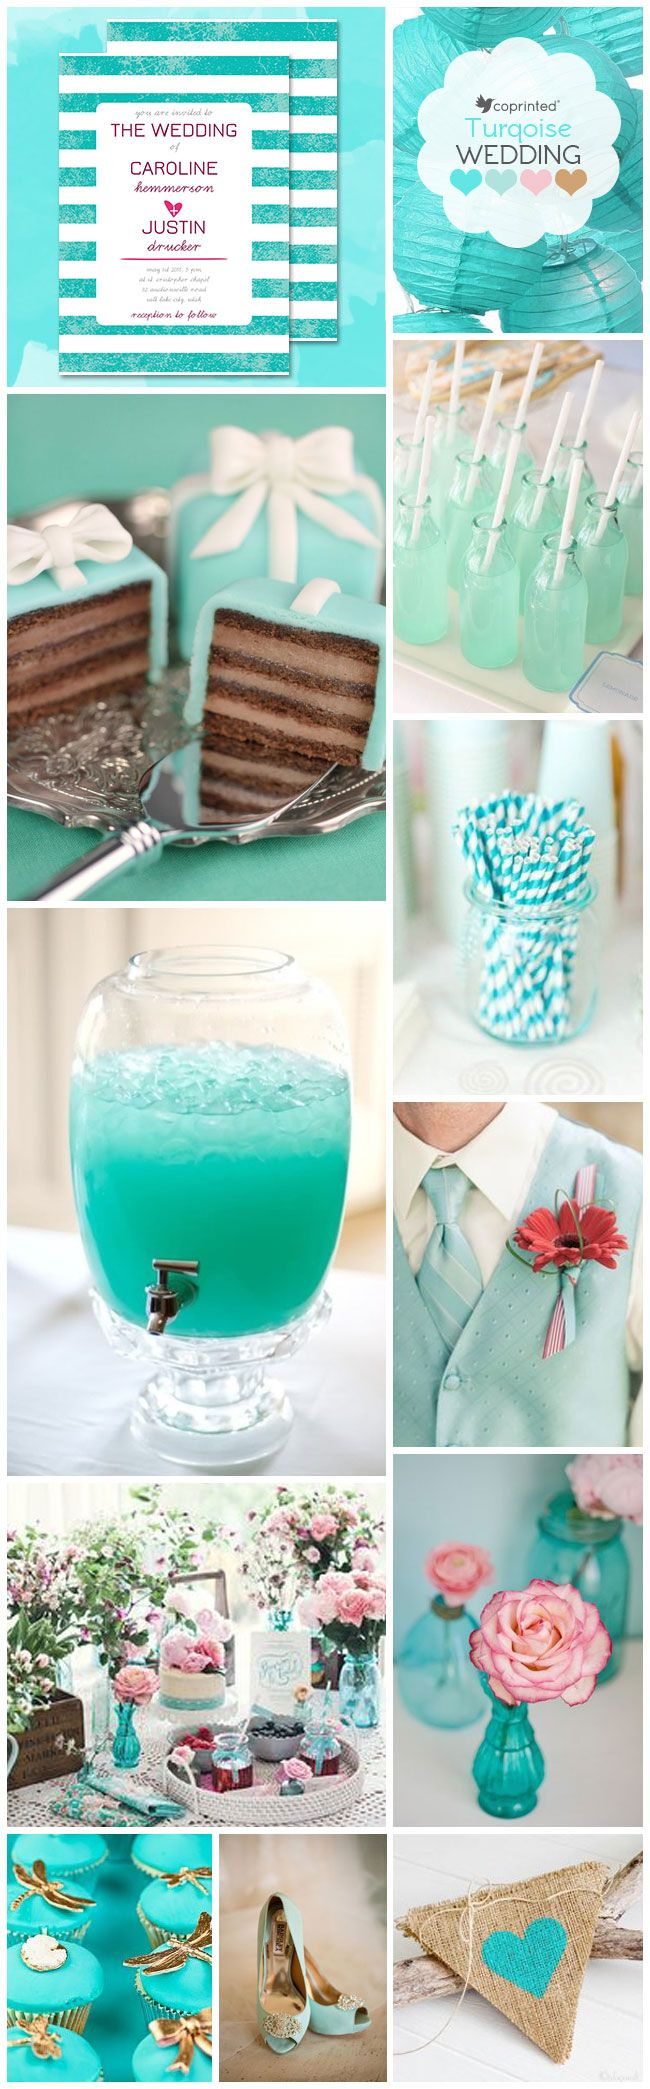 inspiration board with turquoise stationery